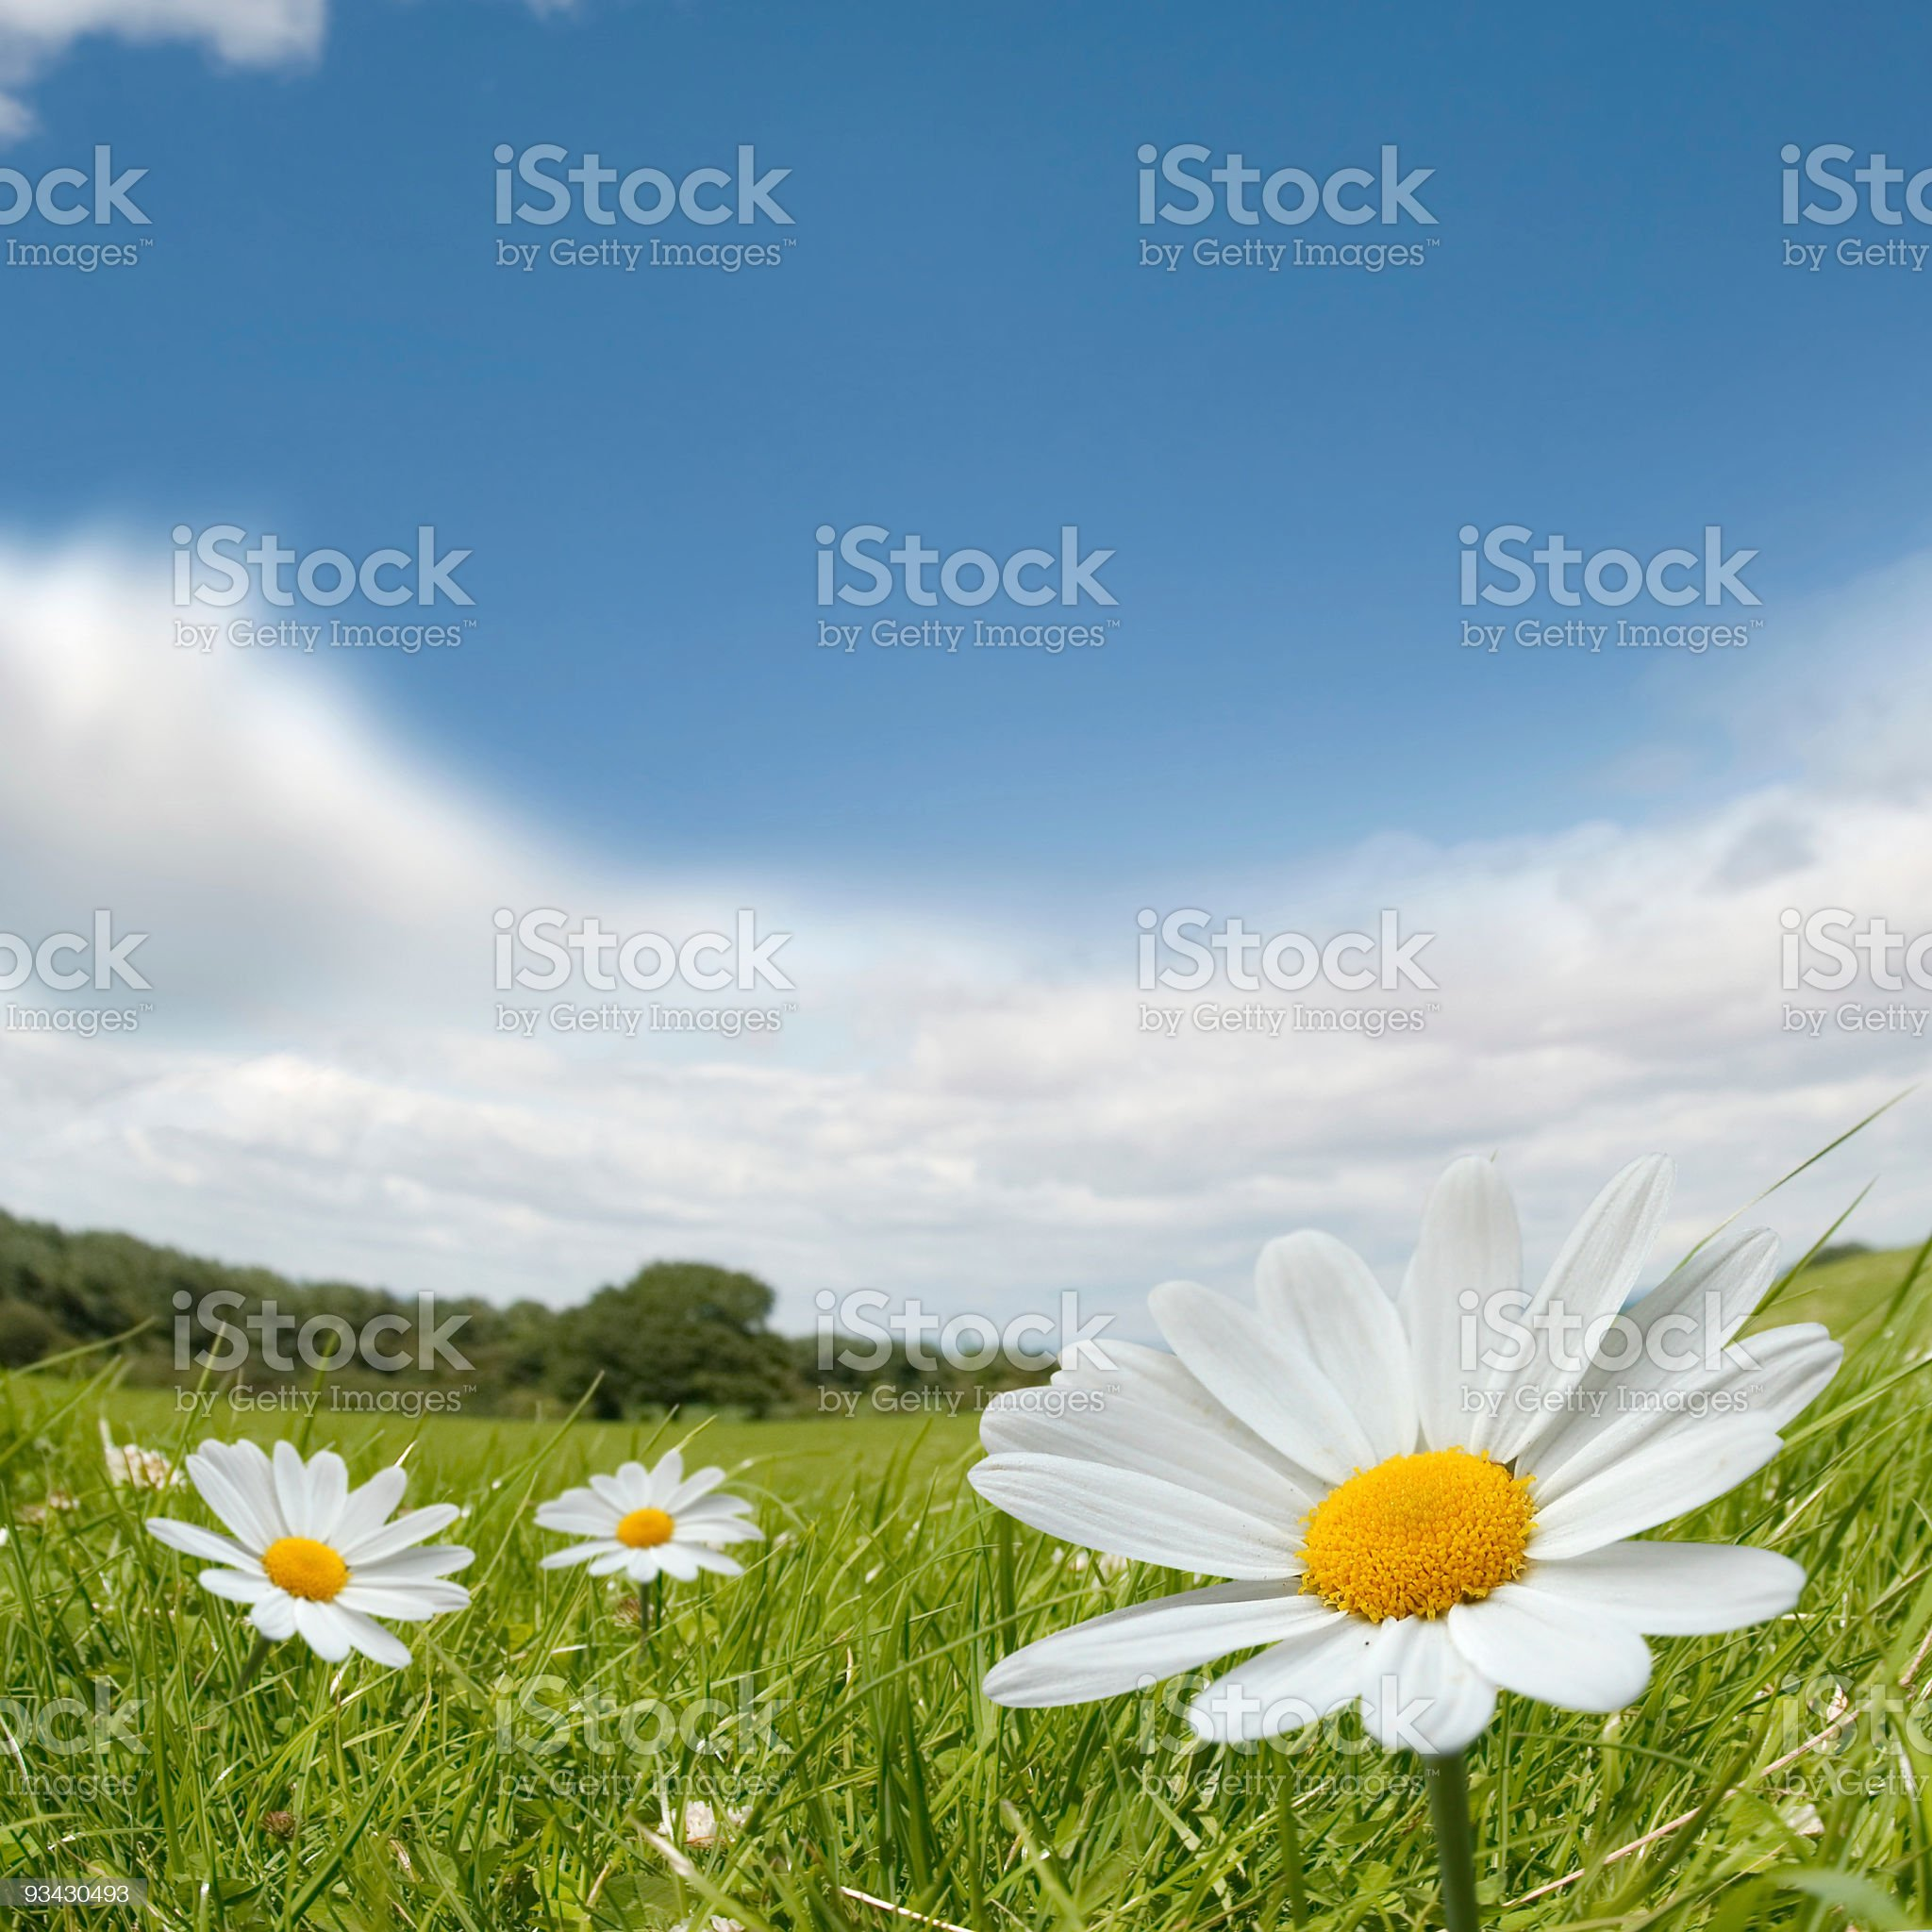 Camomile Summer Landscape royalty-free stock photo